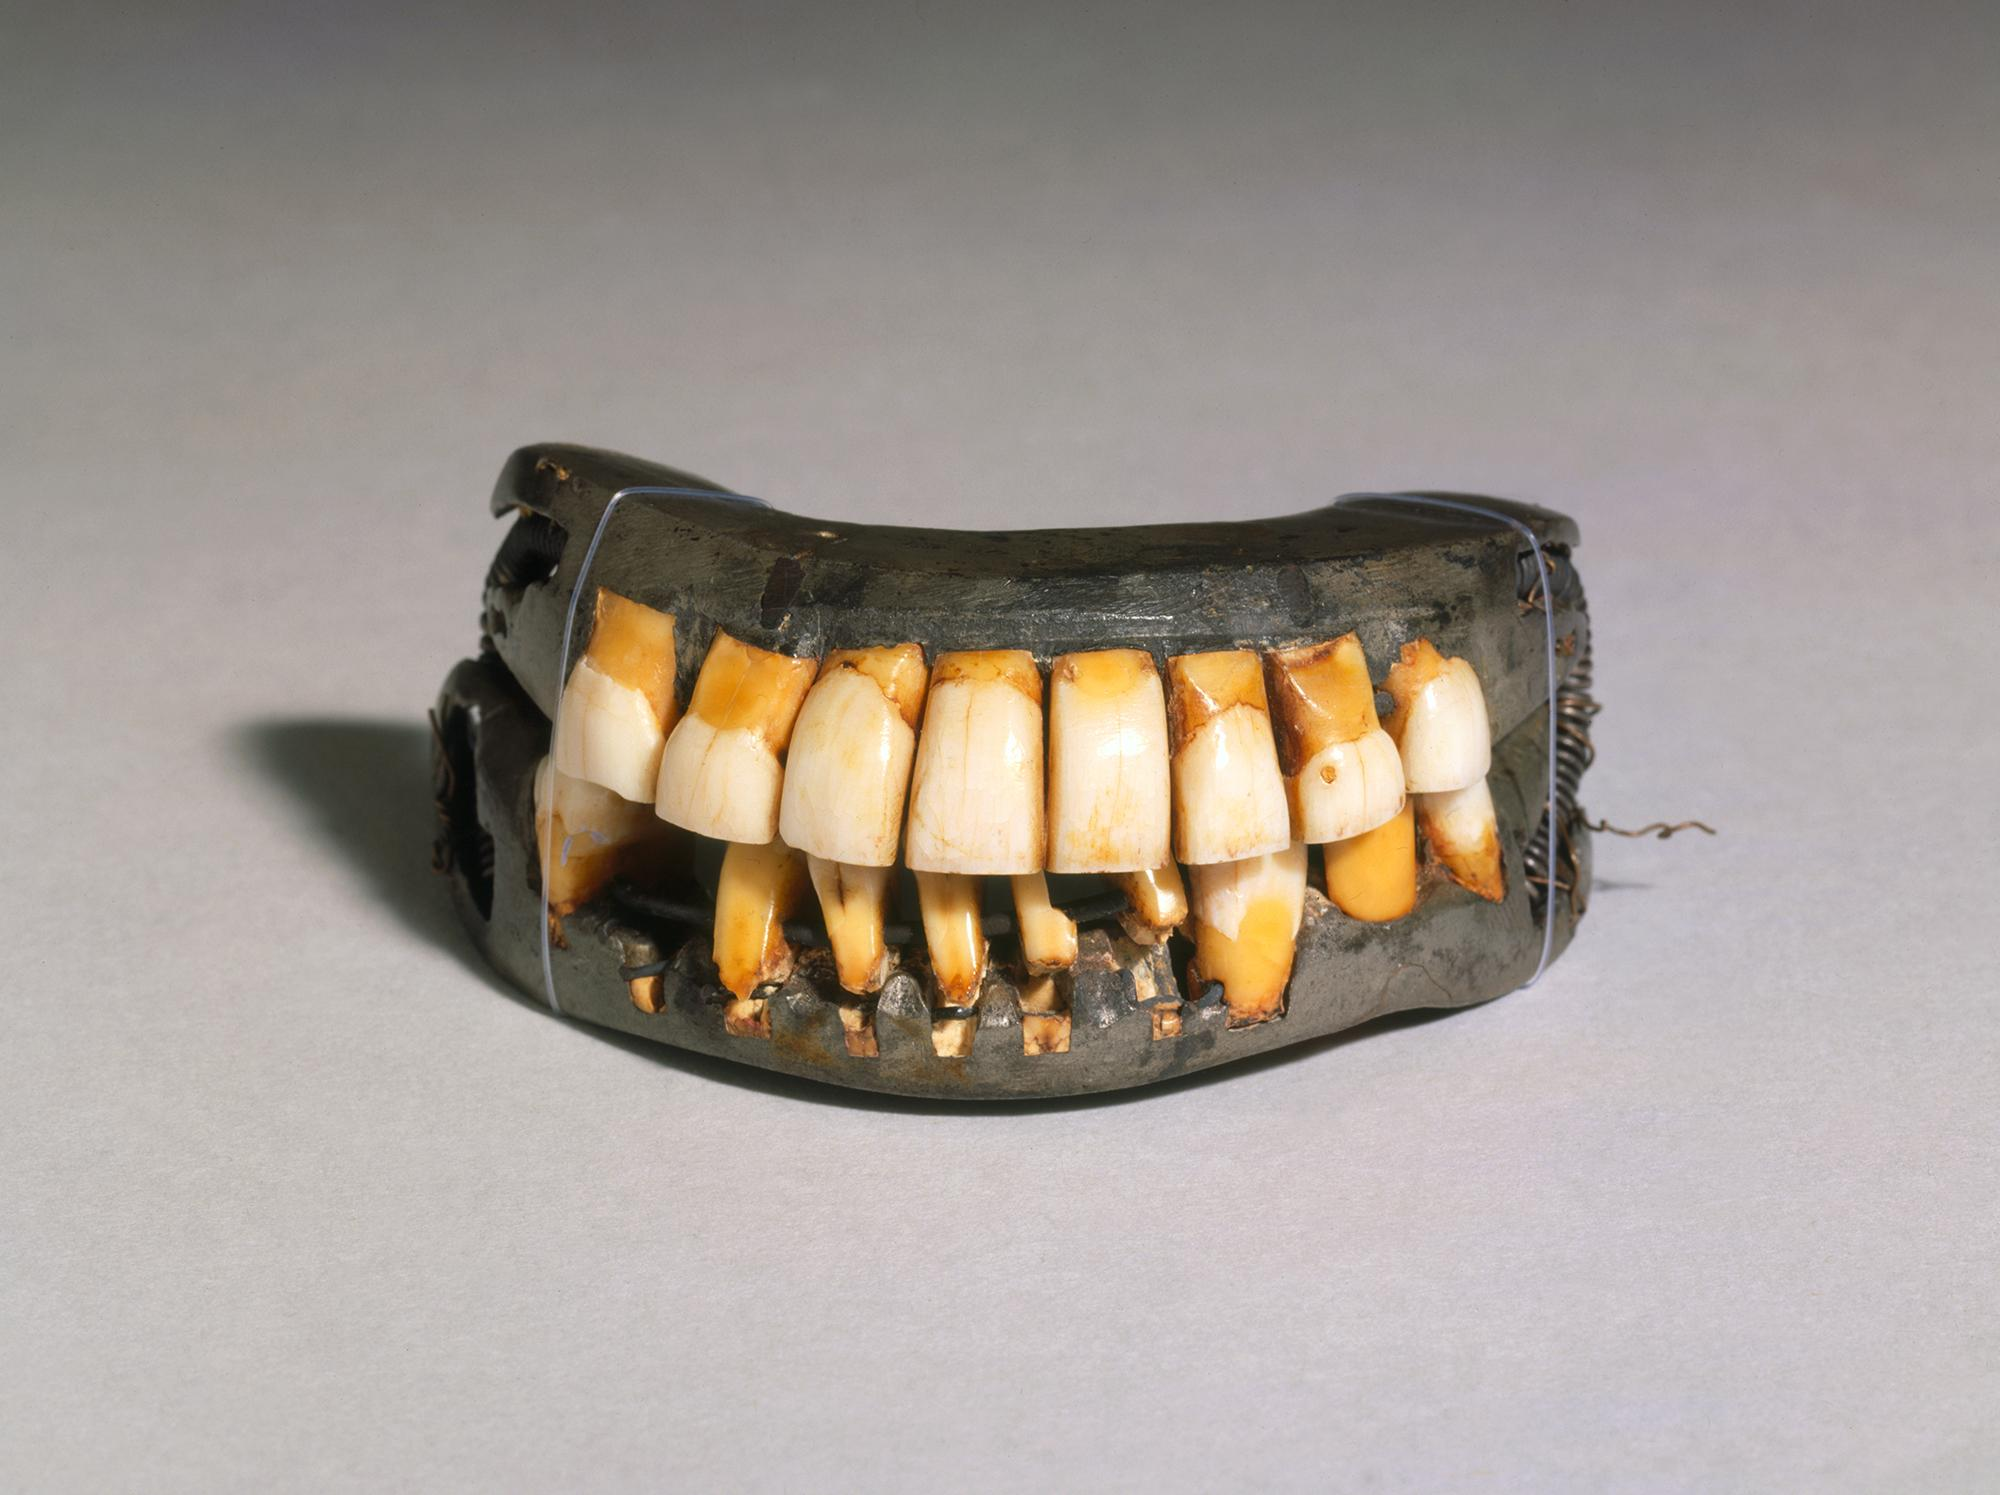 A pair of George Washington's dentures, ca. 1790-1799. MVLA